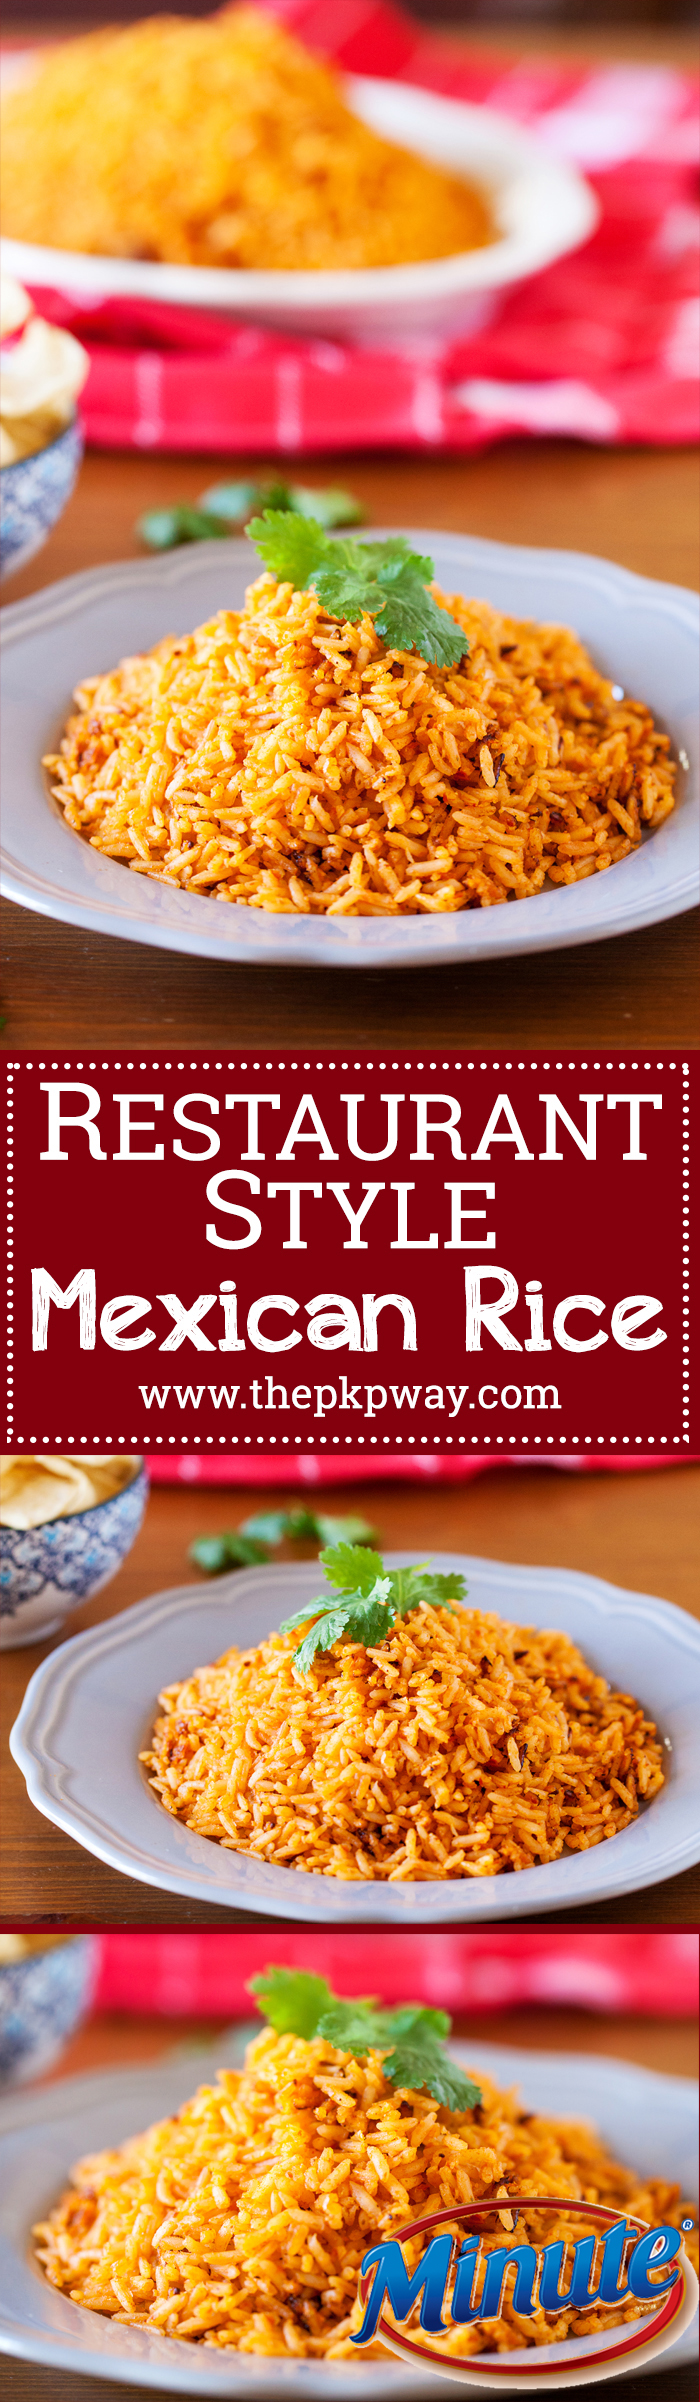 Authentic Restaurant Style Mexican Rice ready in 25 minutes! Or, 7 minutes when using my shortcut!